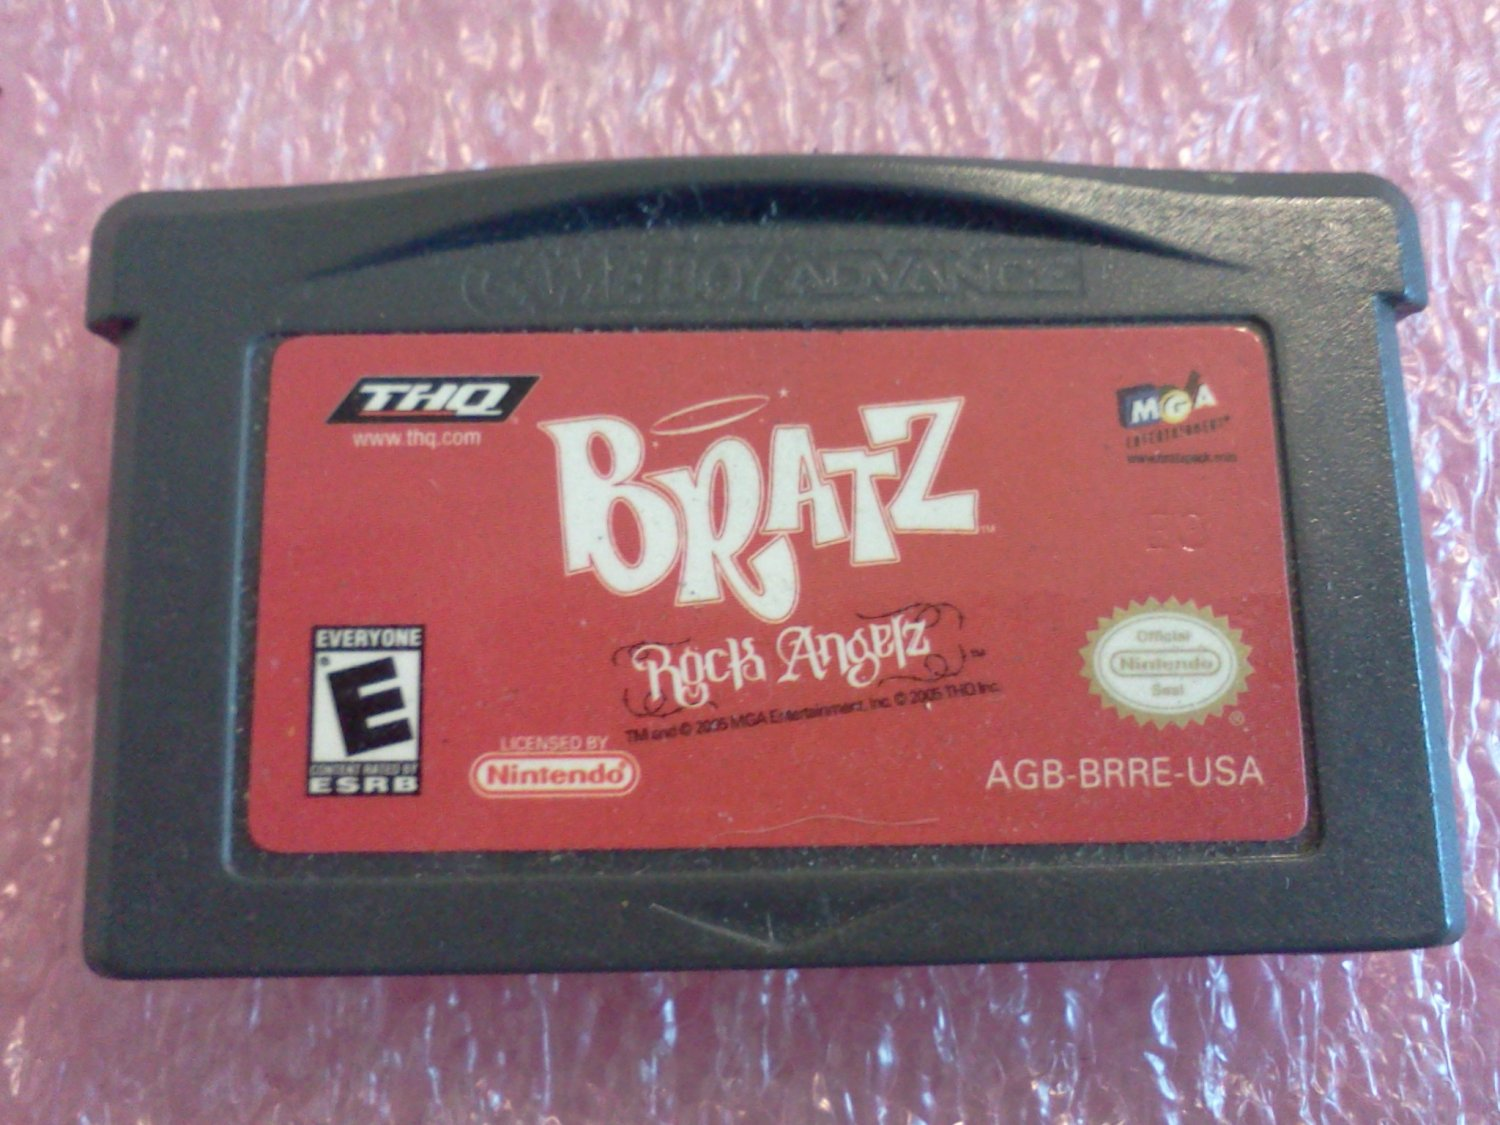 Bratz: Rock Angels (Game Boy Advance)